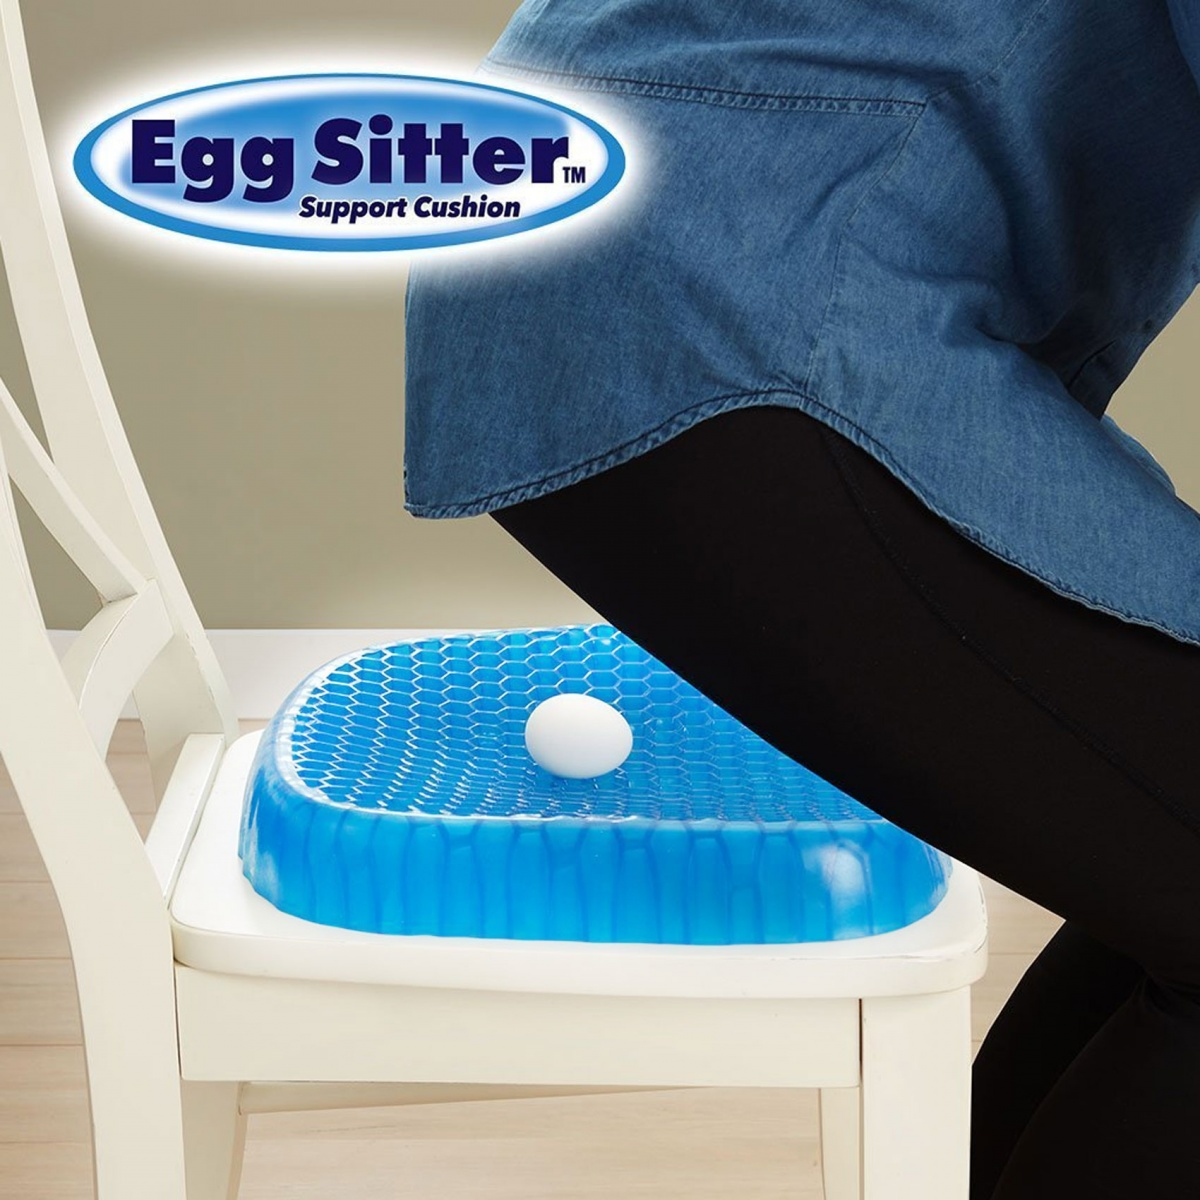 Egg Sitter Support Cushion - Blue